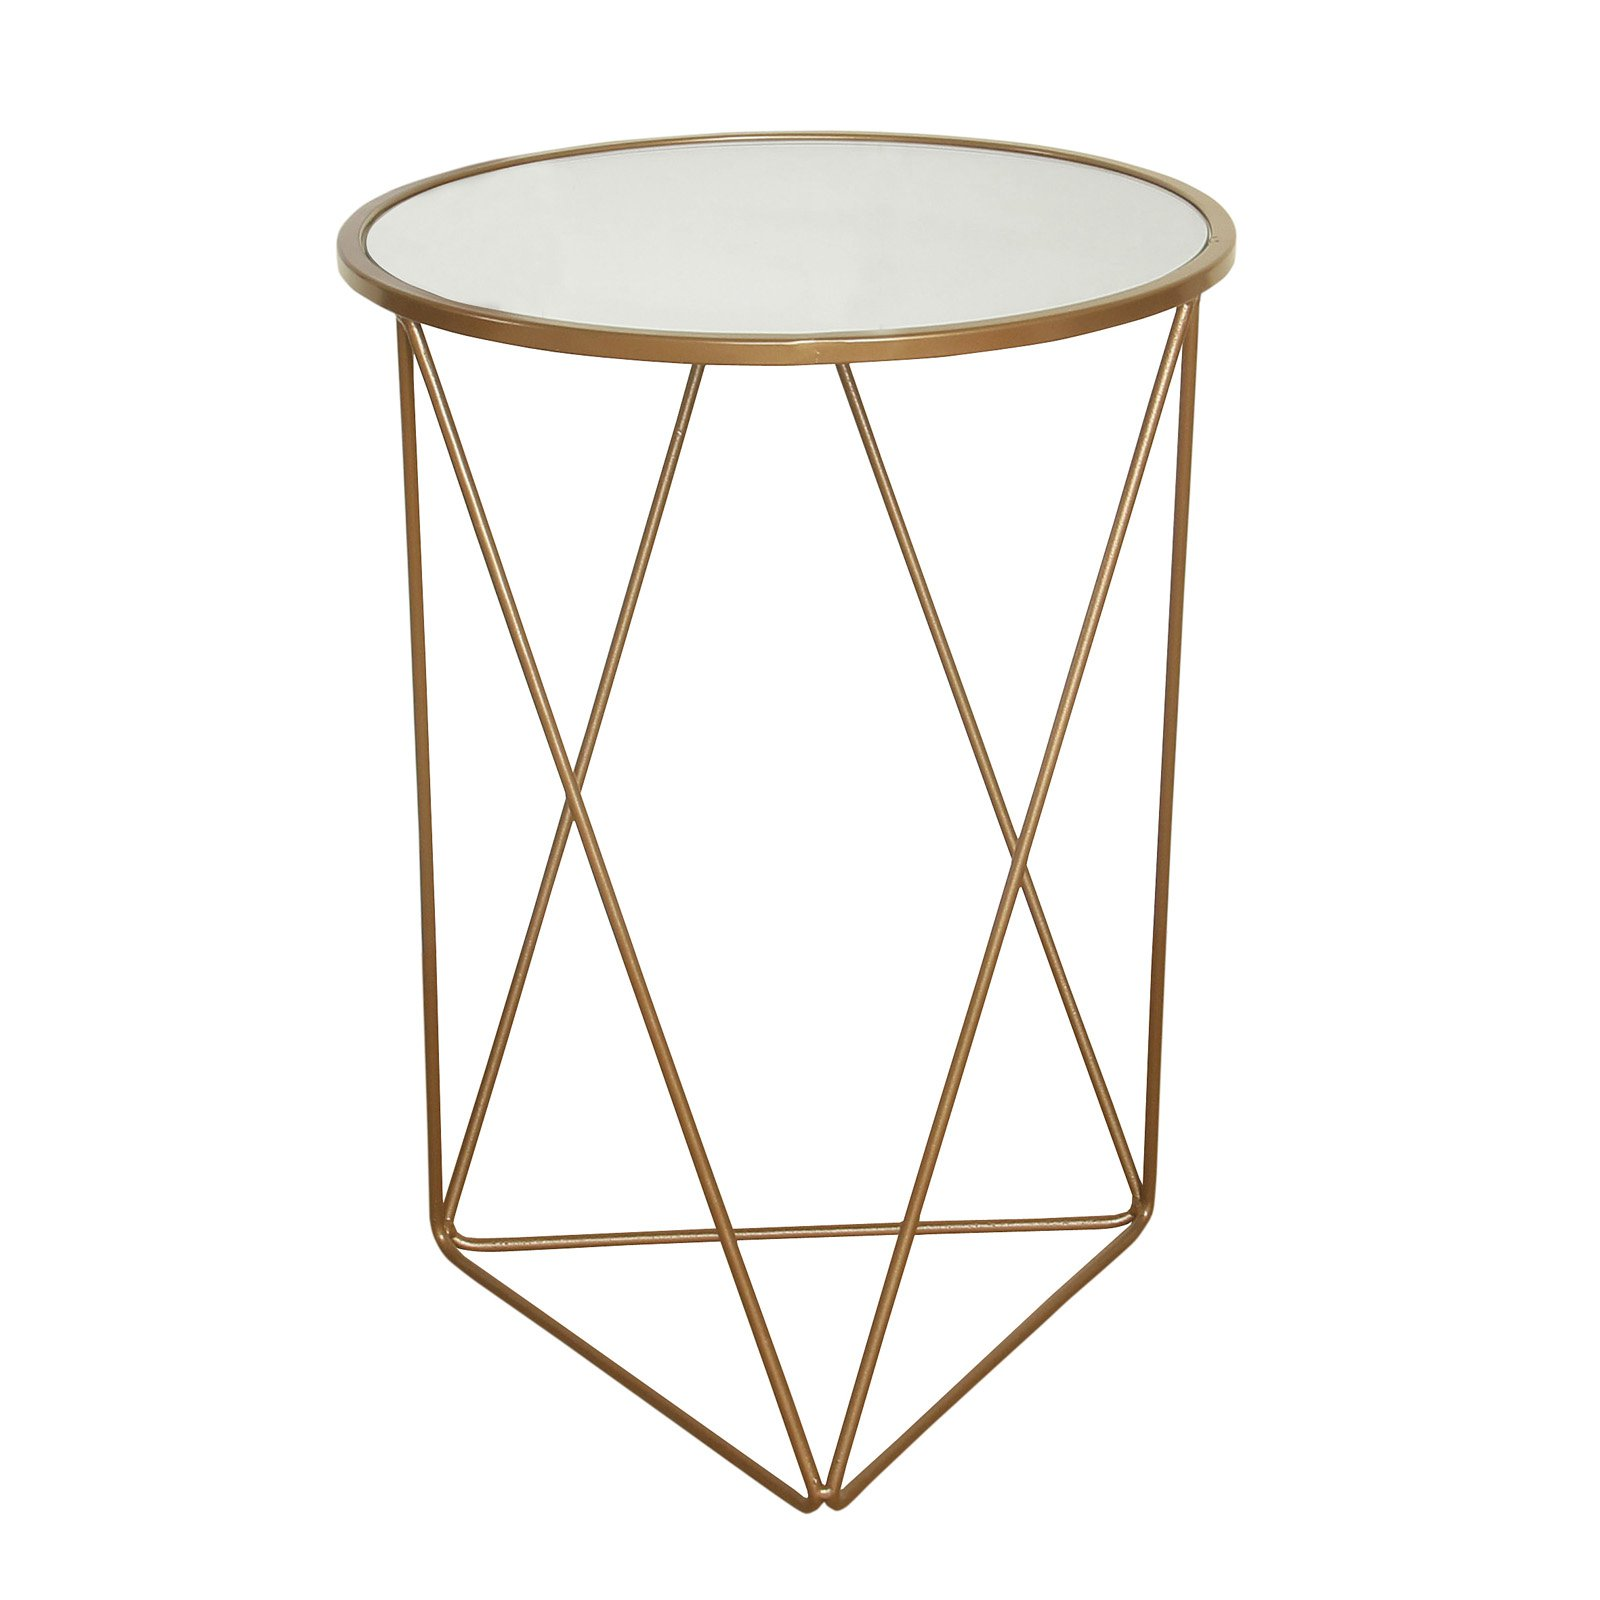 homepop gold accent round end table inuse ginger jar lamps mango wood console ikea hallway storage comfortable chairs patterned plastic tablecloths small with marble top mirrored